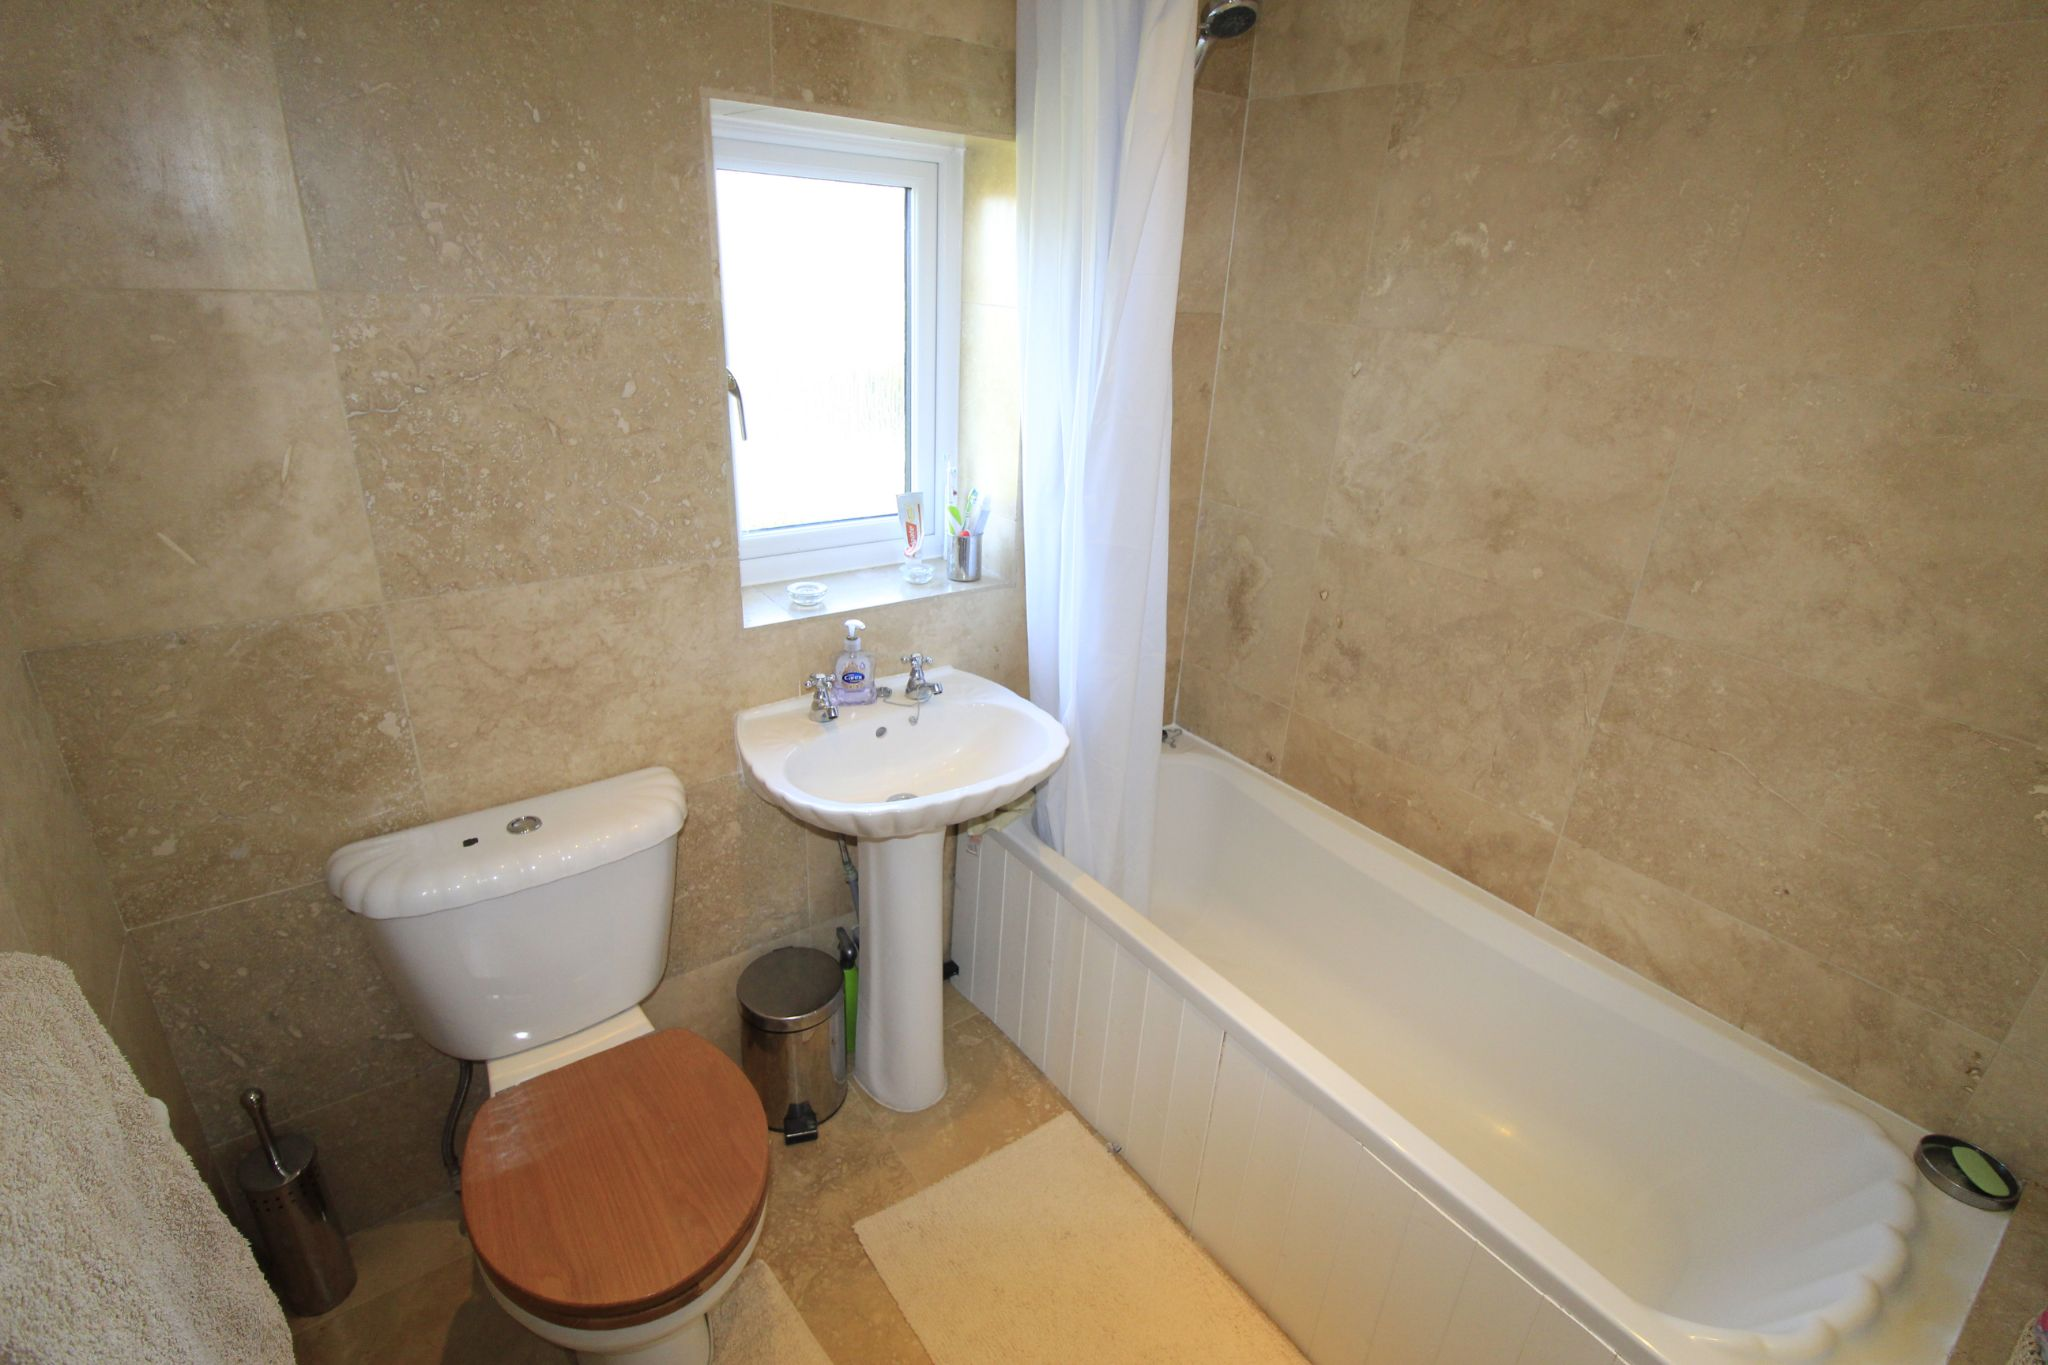 3 bedroom semi-detached house SSTC in Brighouse - Bathroom